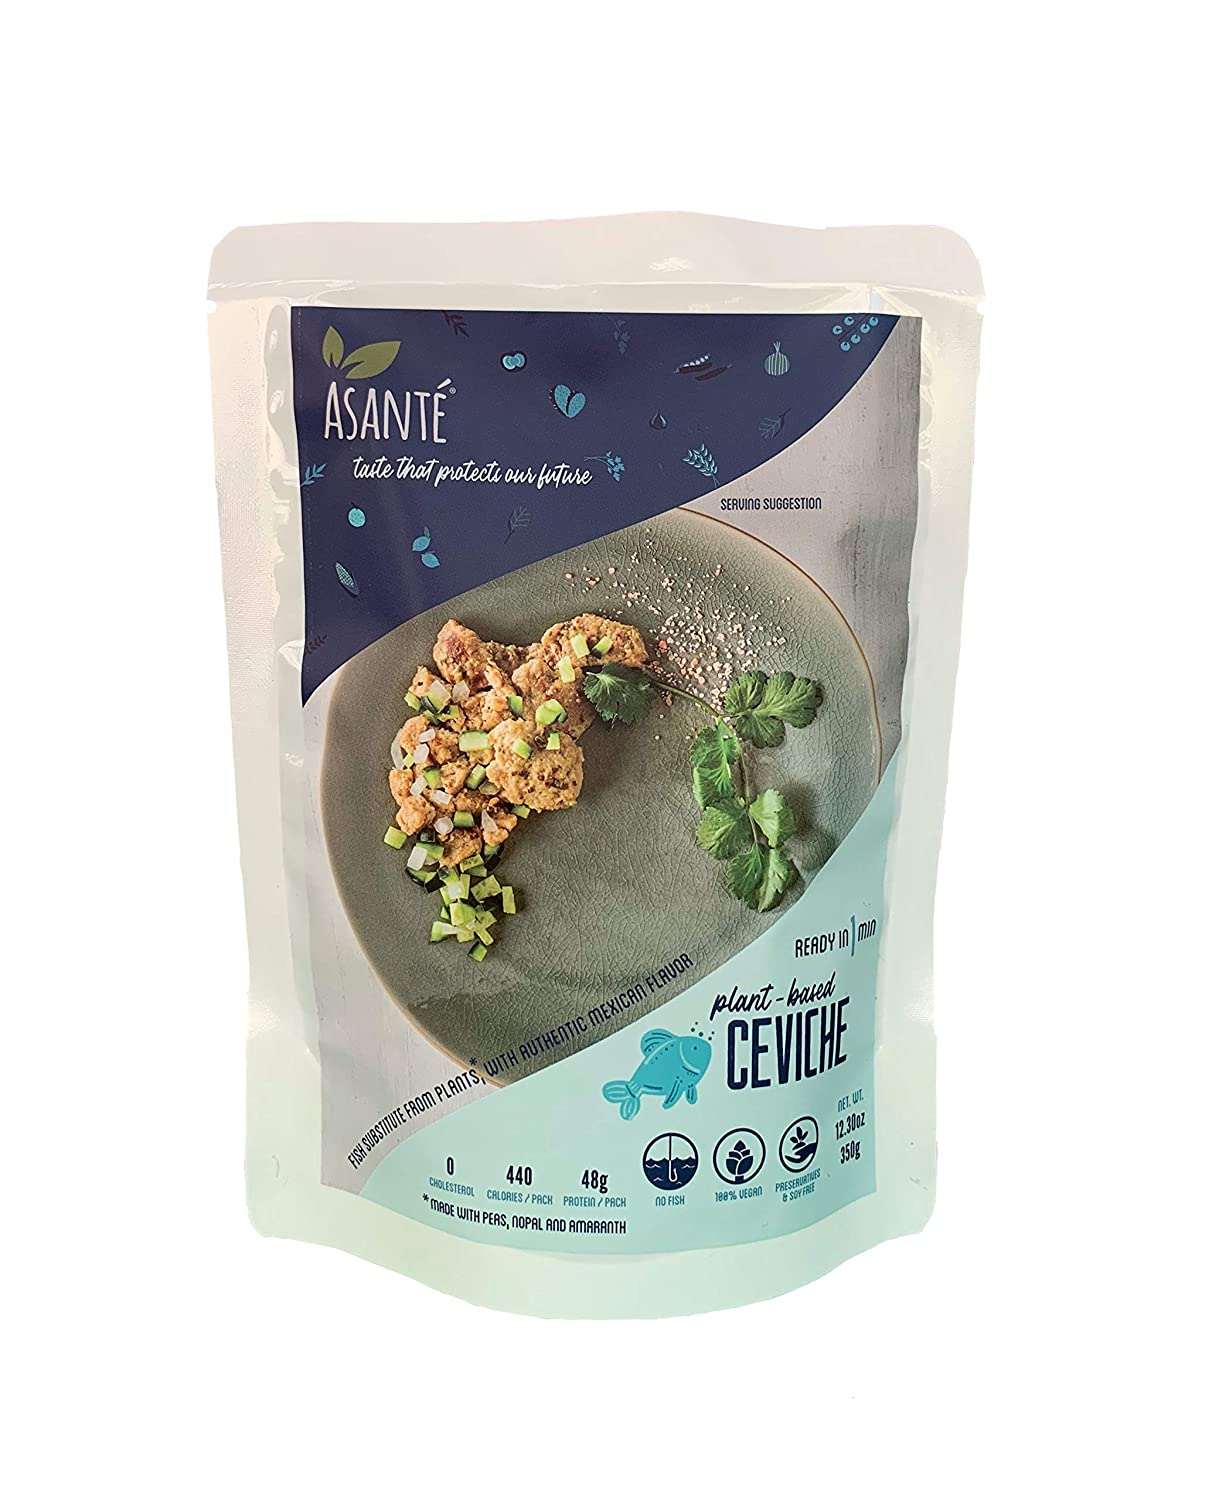 Asante Plant Based Meals - Plant Based Ceviche - Ready Meal Kits - Vegetarian Food, Healthy, Vegan – Fish Meat Substitute with Authentic Mexican Flavor - All Natural Fresh and Organic Ingredients